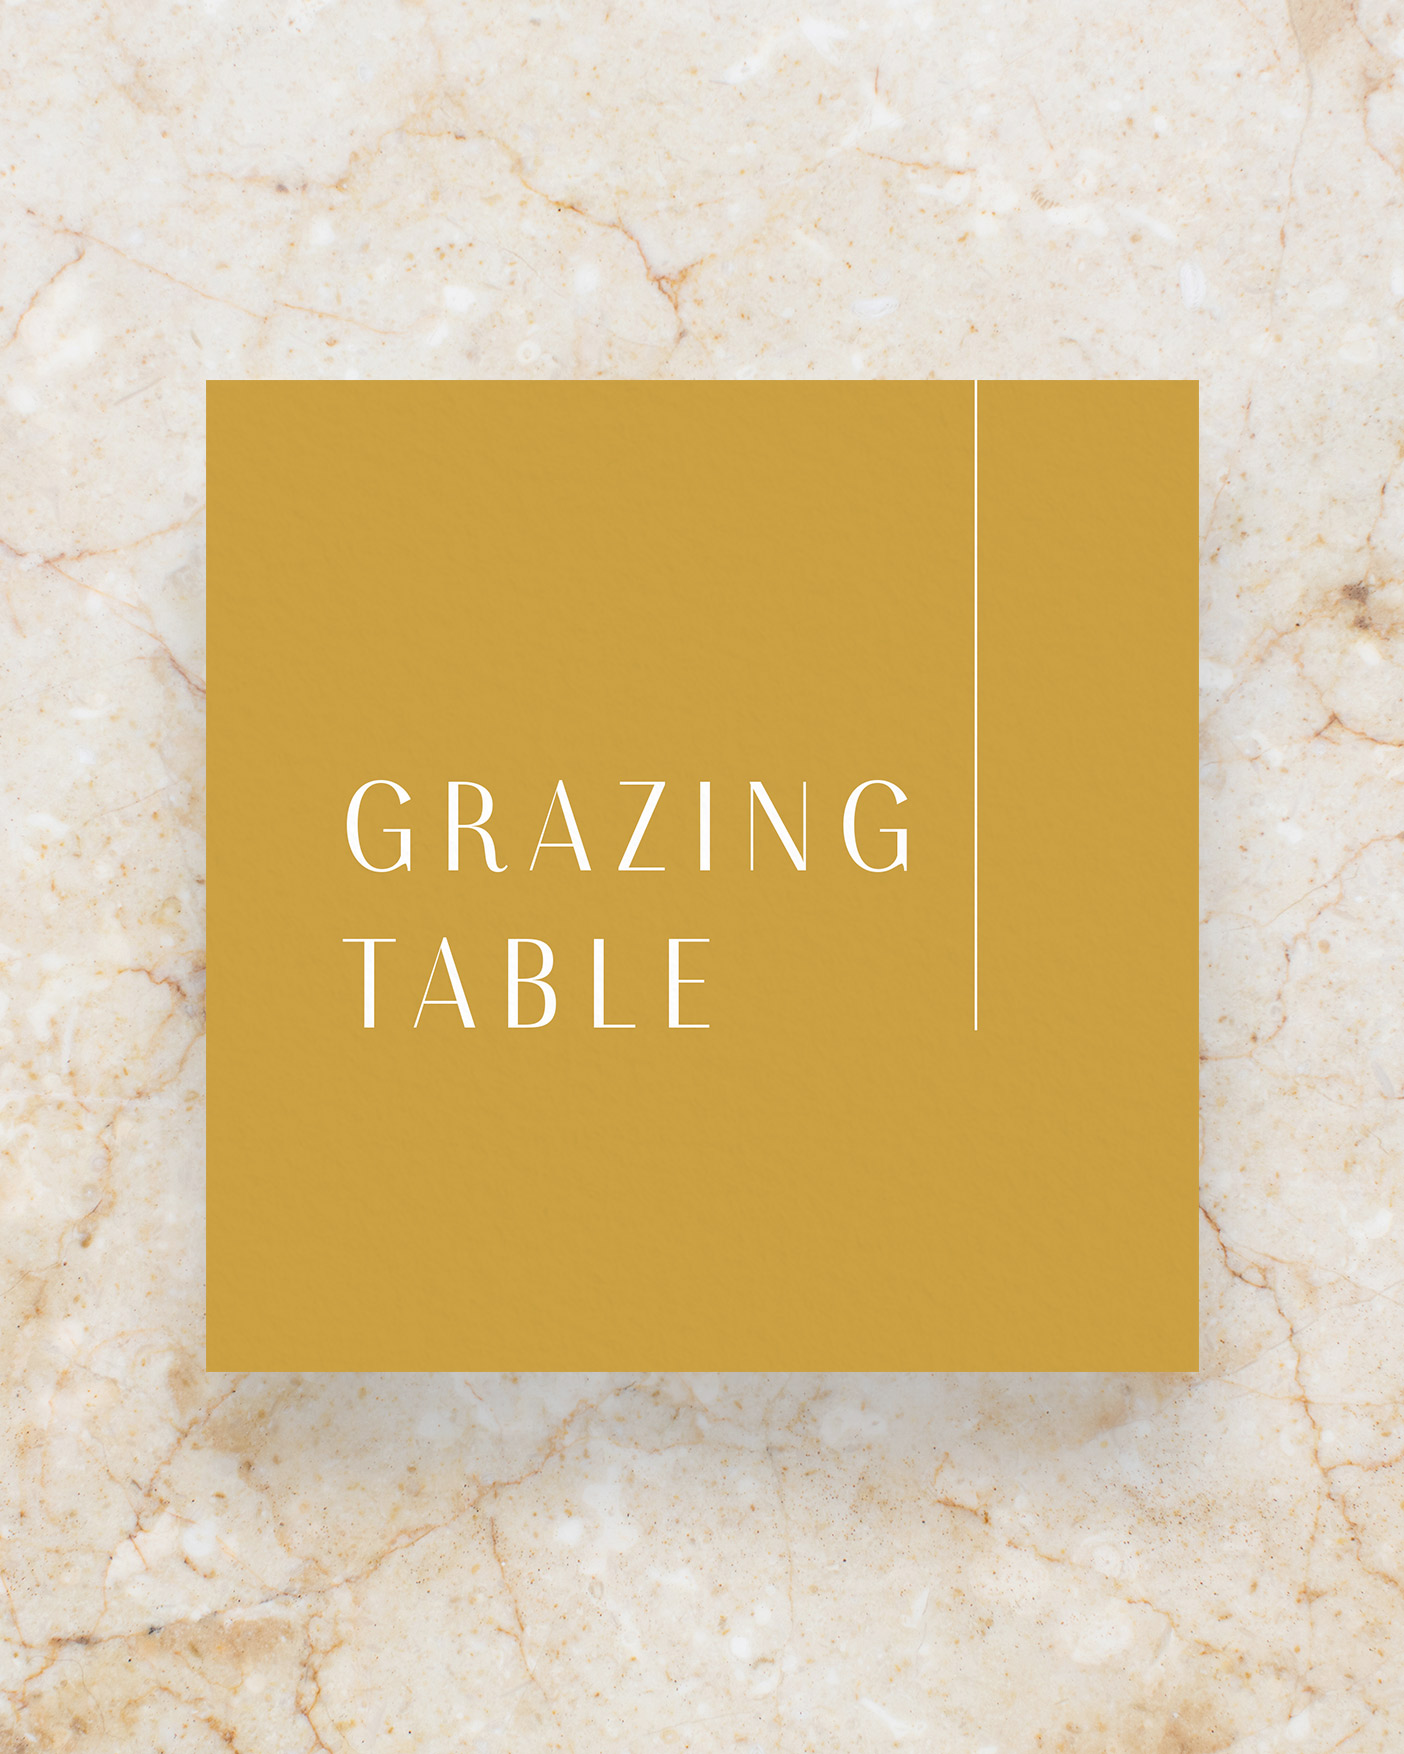 Grazing Table Sign